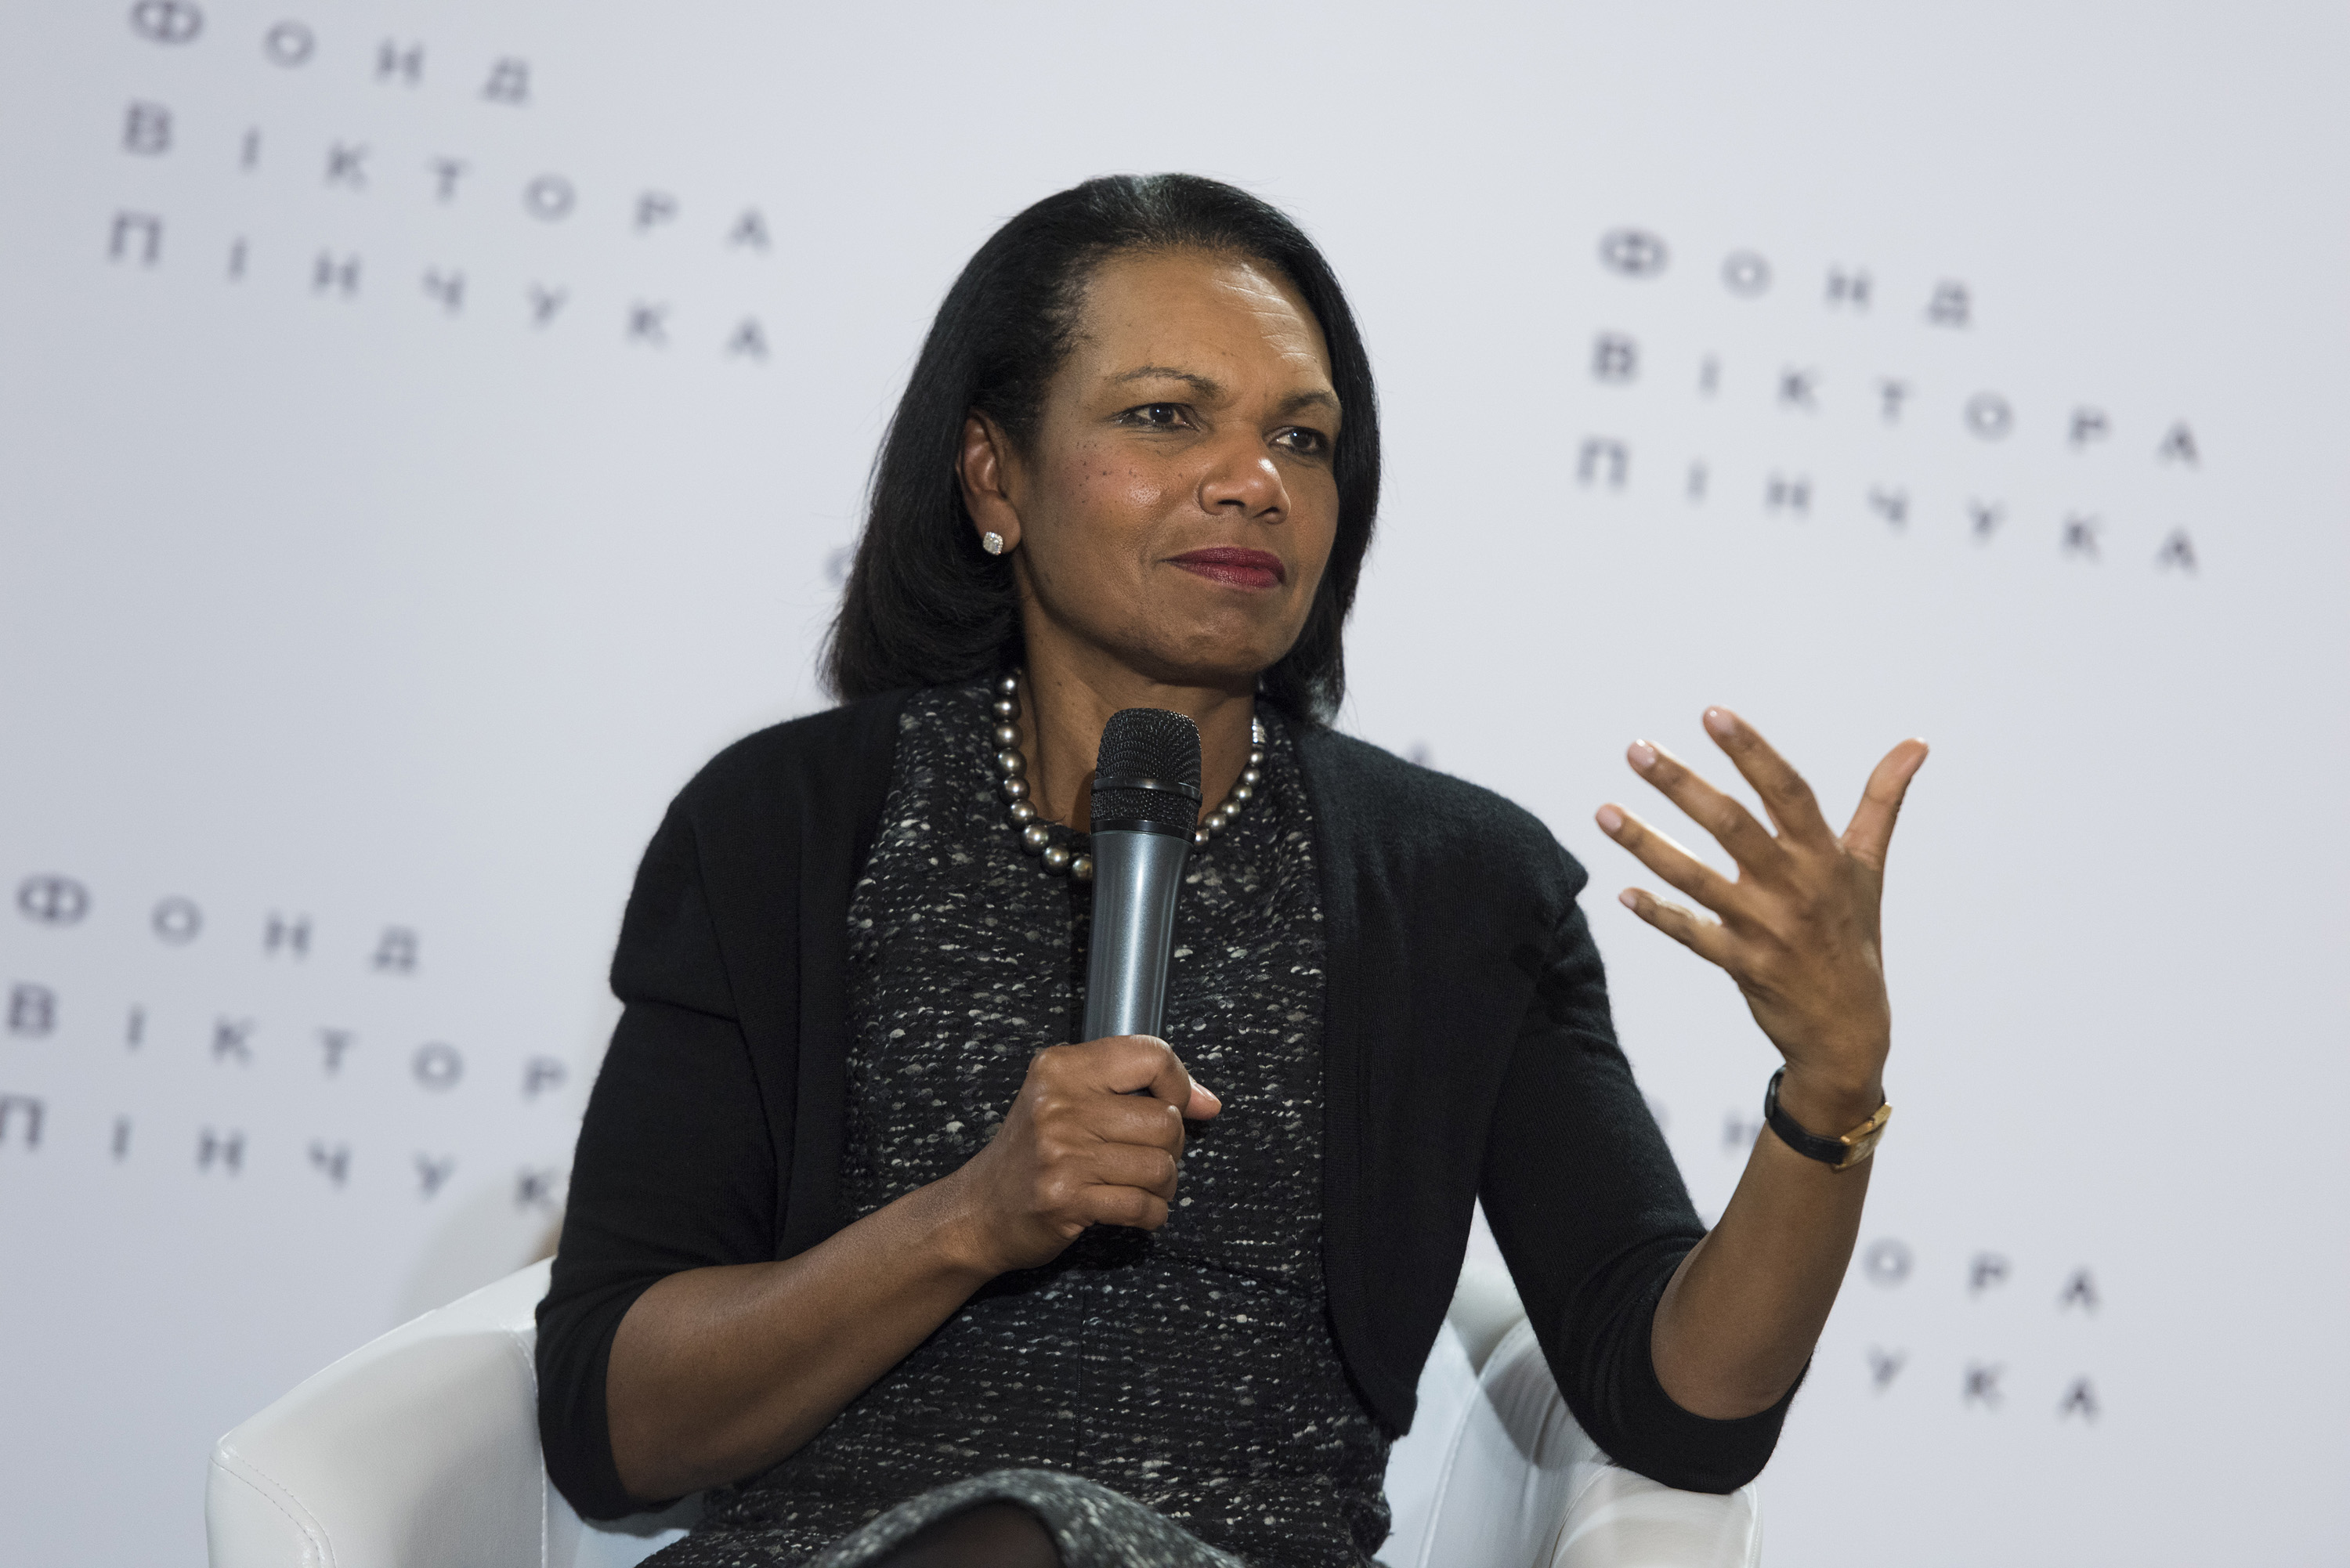 Public lecture by Condoleezza Rice on Challenges in an Ever-Changing World